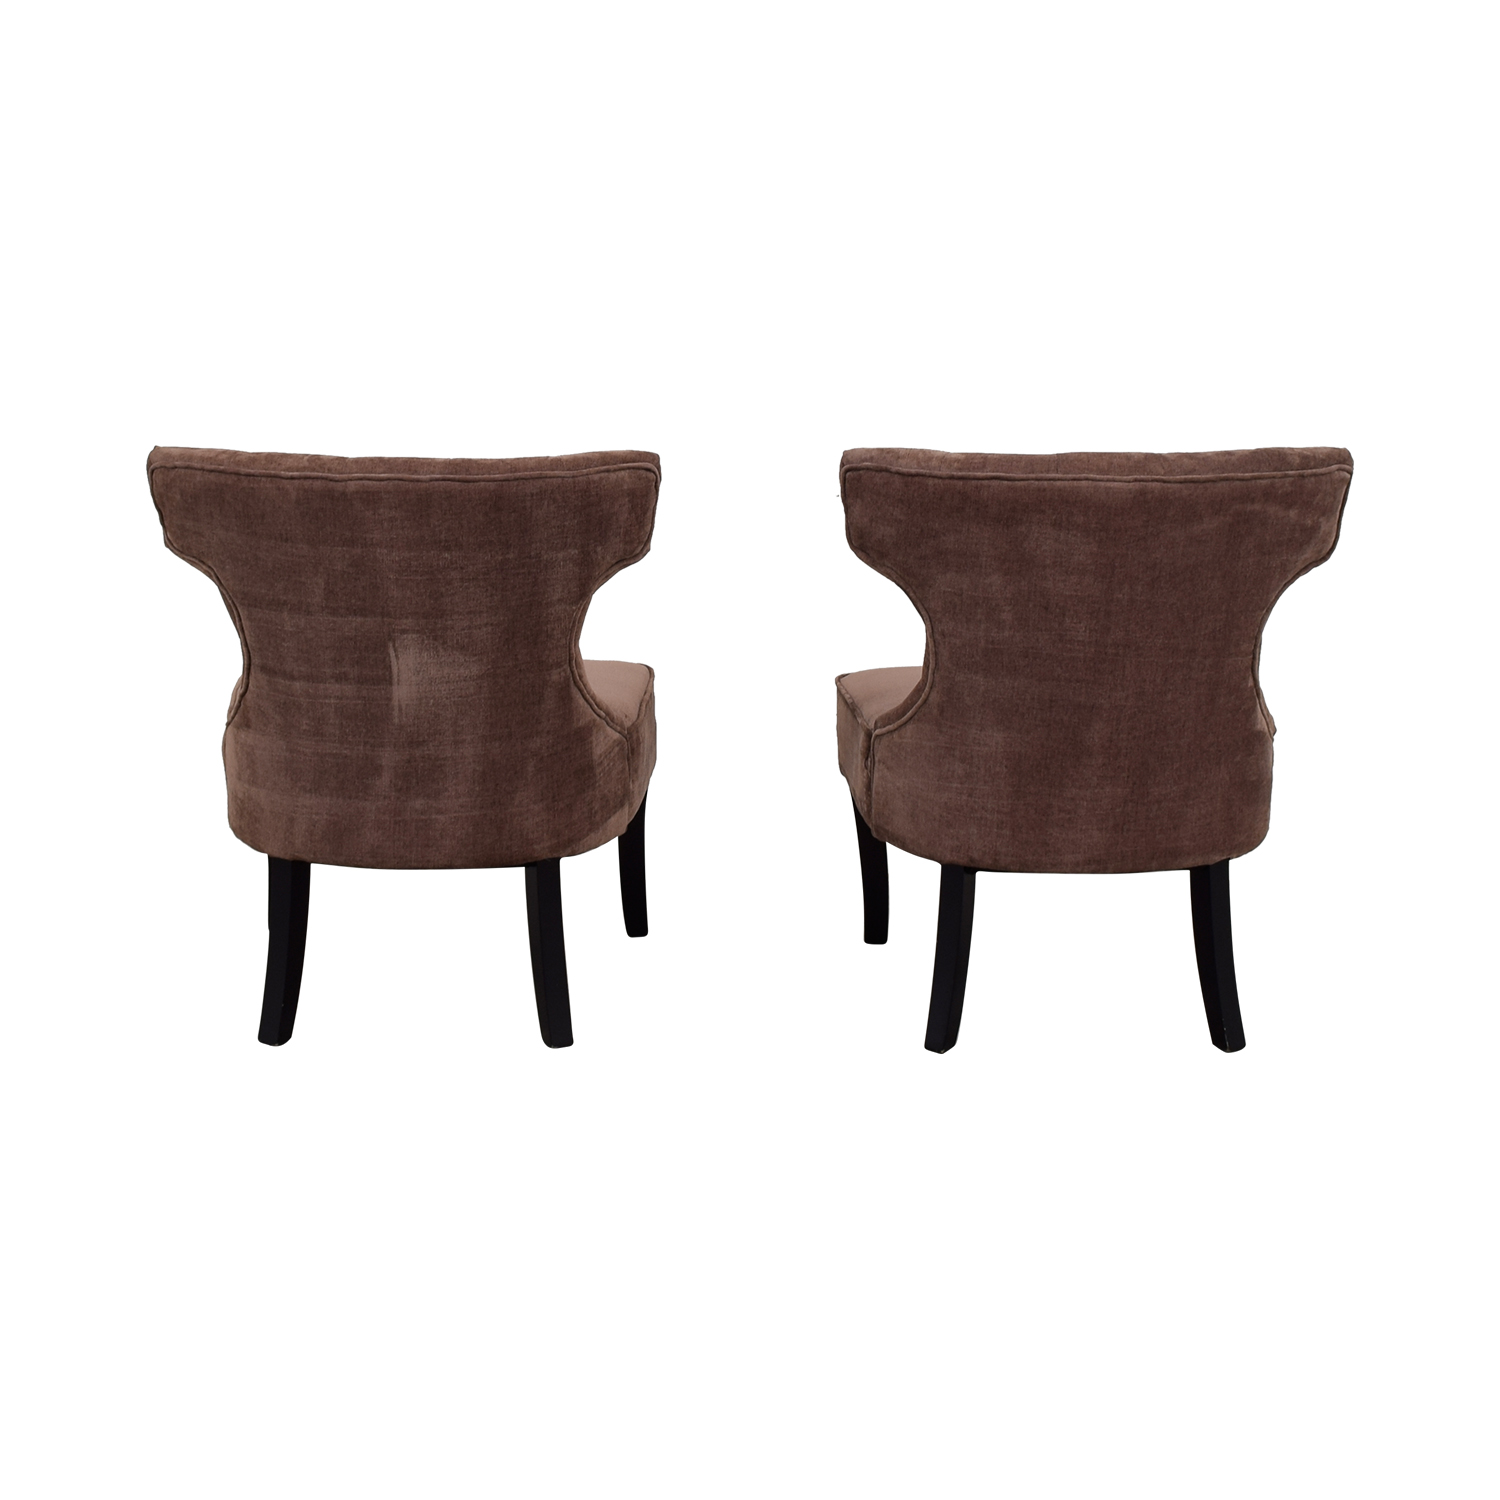 Lilac Tufted Upholstered Accent Chairs